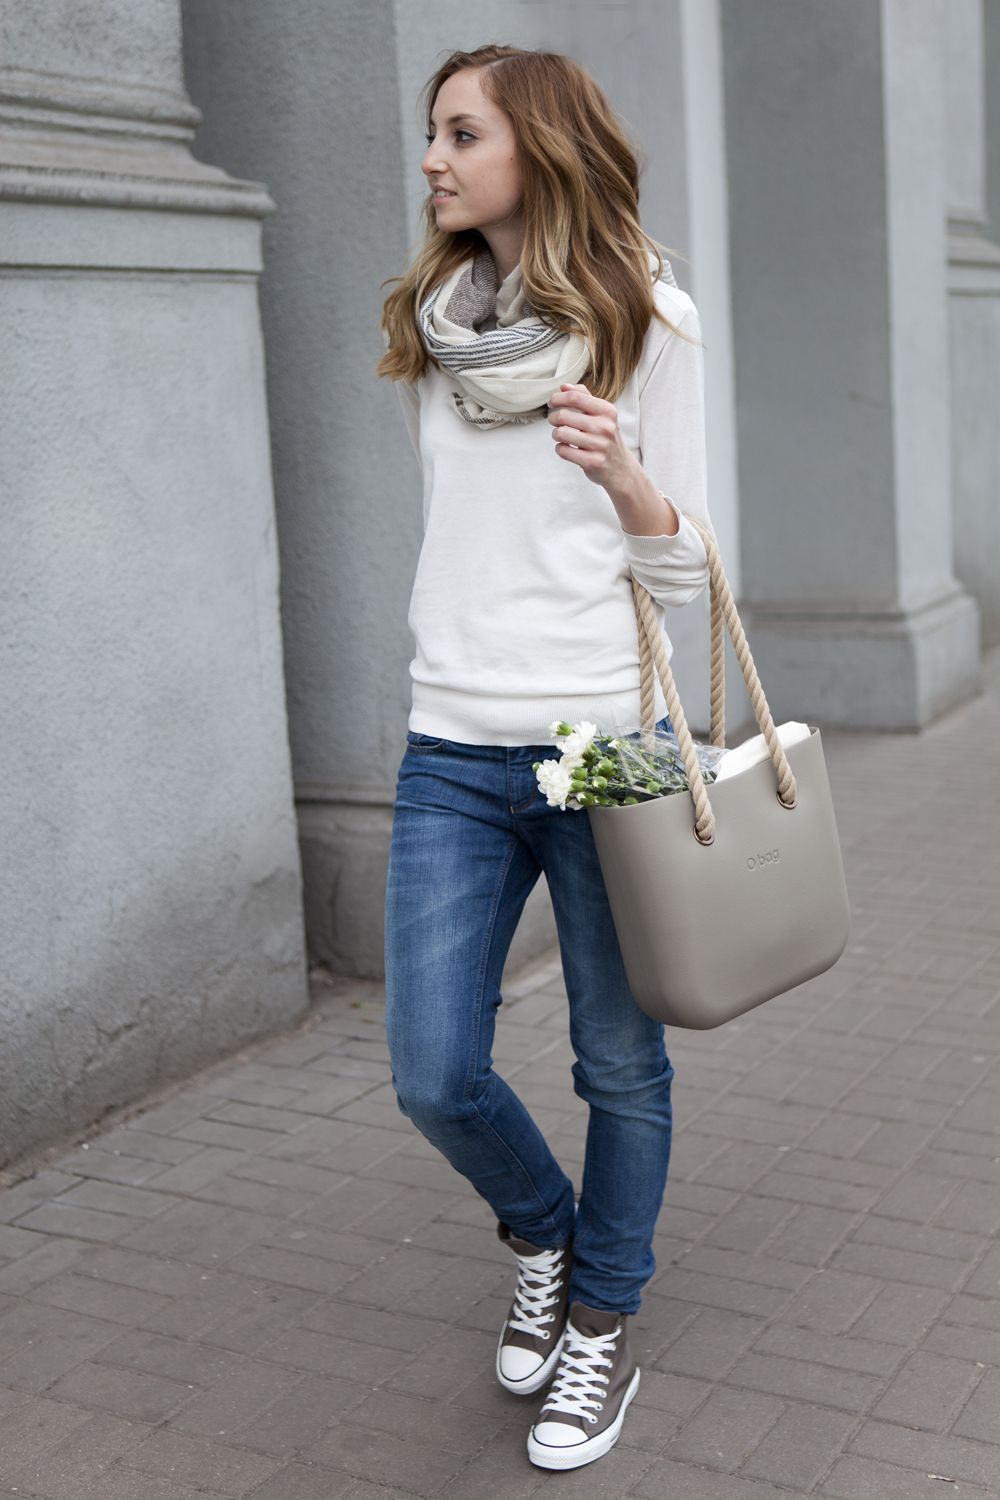 Converse sneakers and loose jeans | Fashion | Pinterest | Converse sneakers Converse and ...